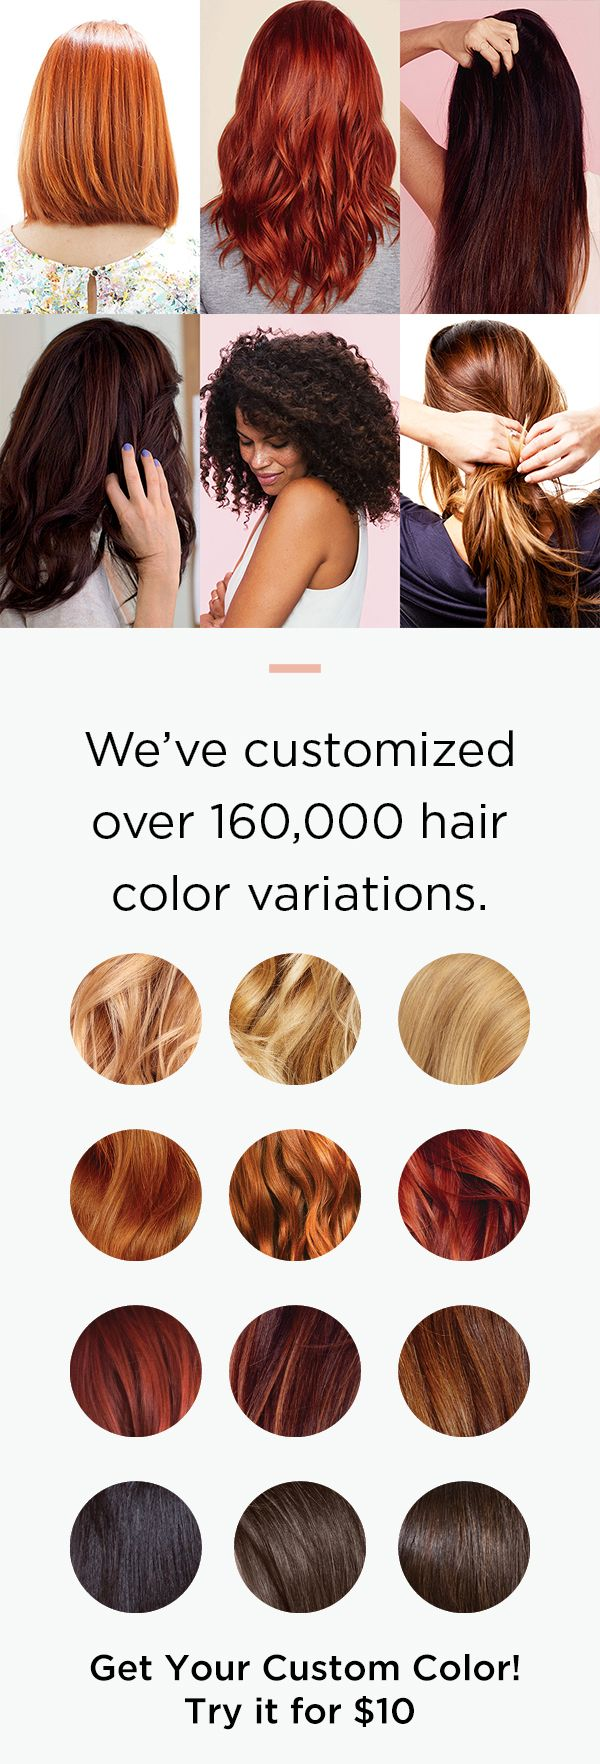 """Save time and money by trying this new DIY hair color: """"The beauty of it is I can color my hair at home, but I get salon results. That's the best."""""""